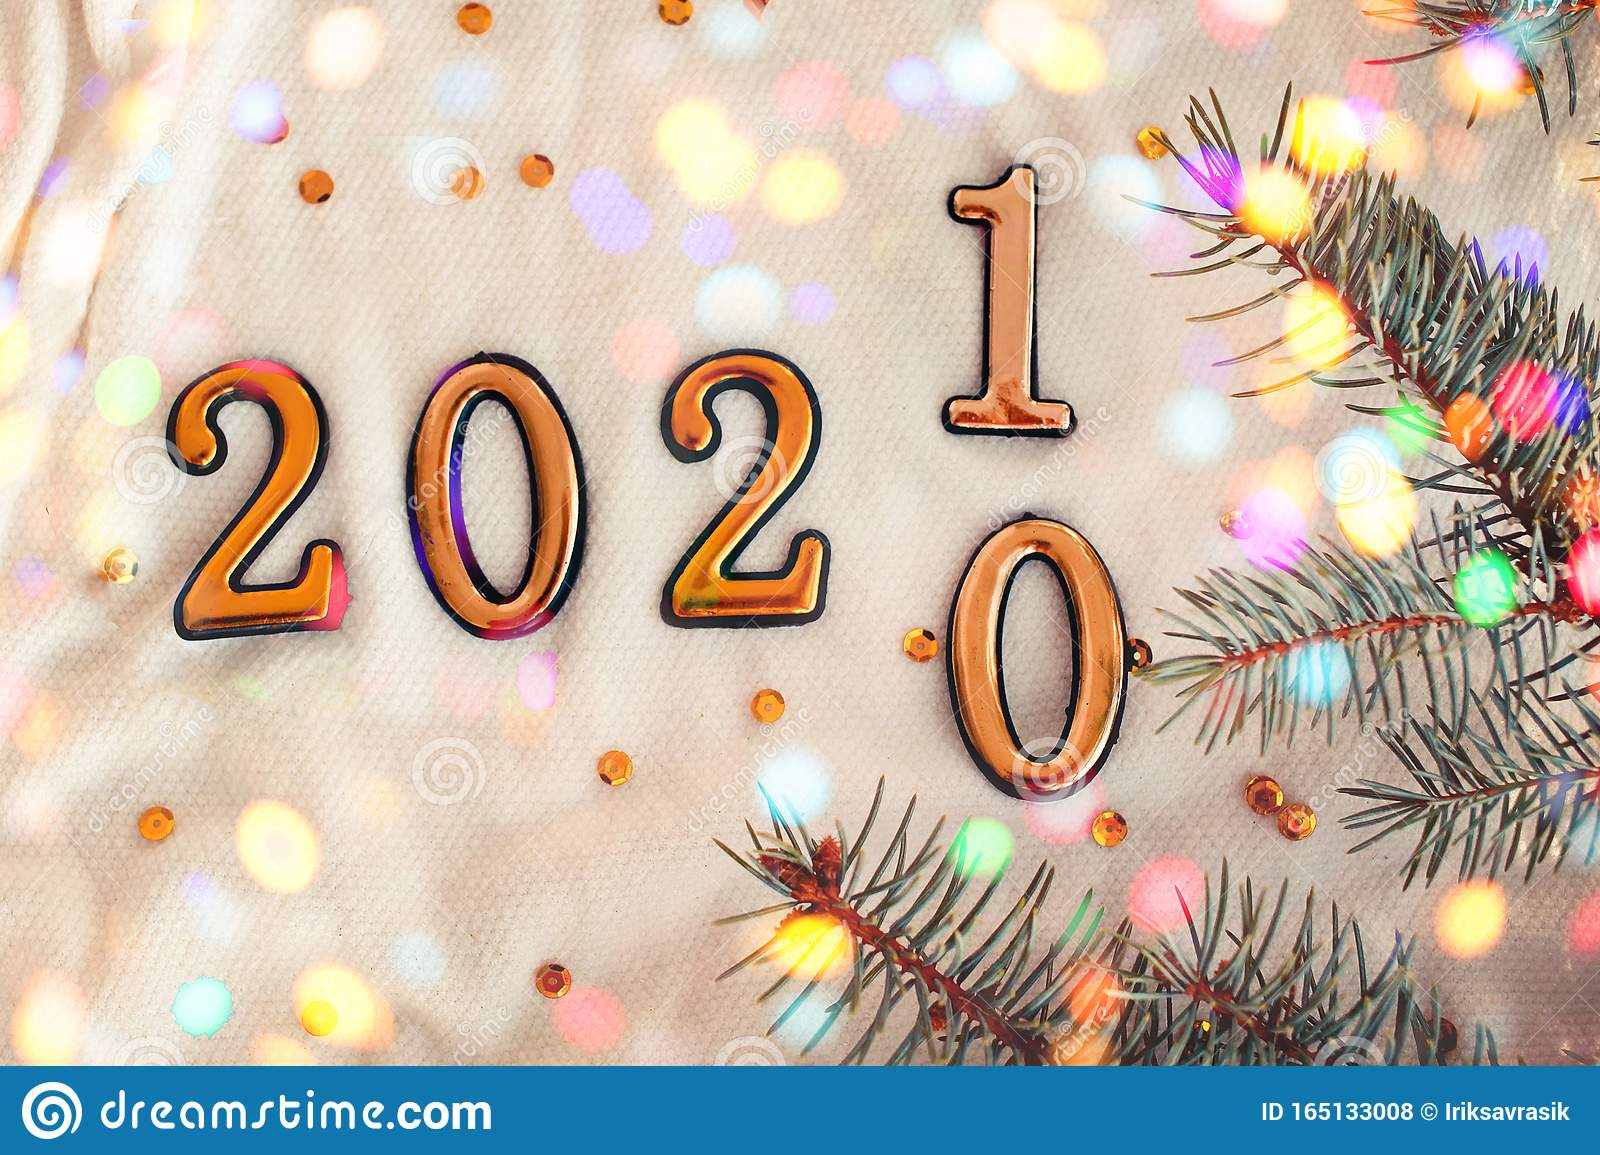 New Year Concept 2020 Change To 2021 Stock Photo - Image ...